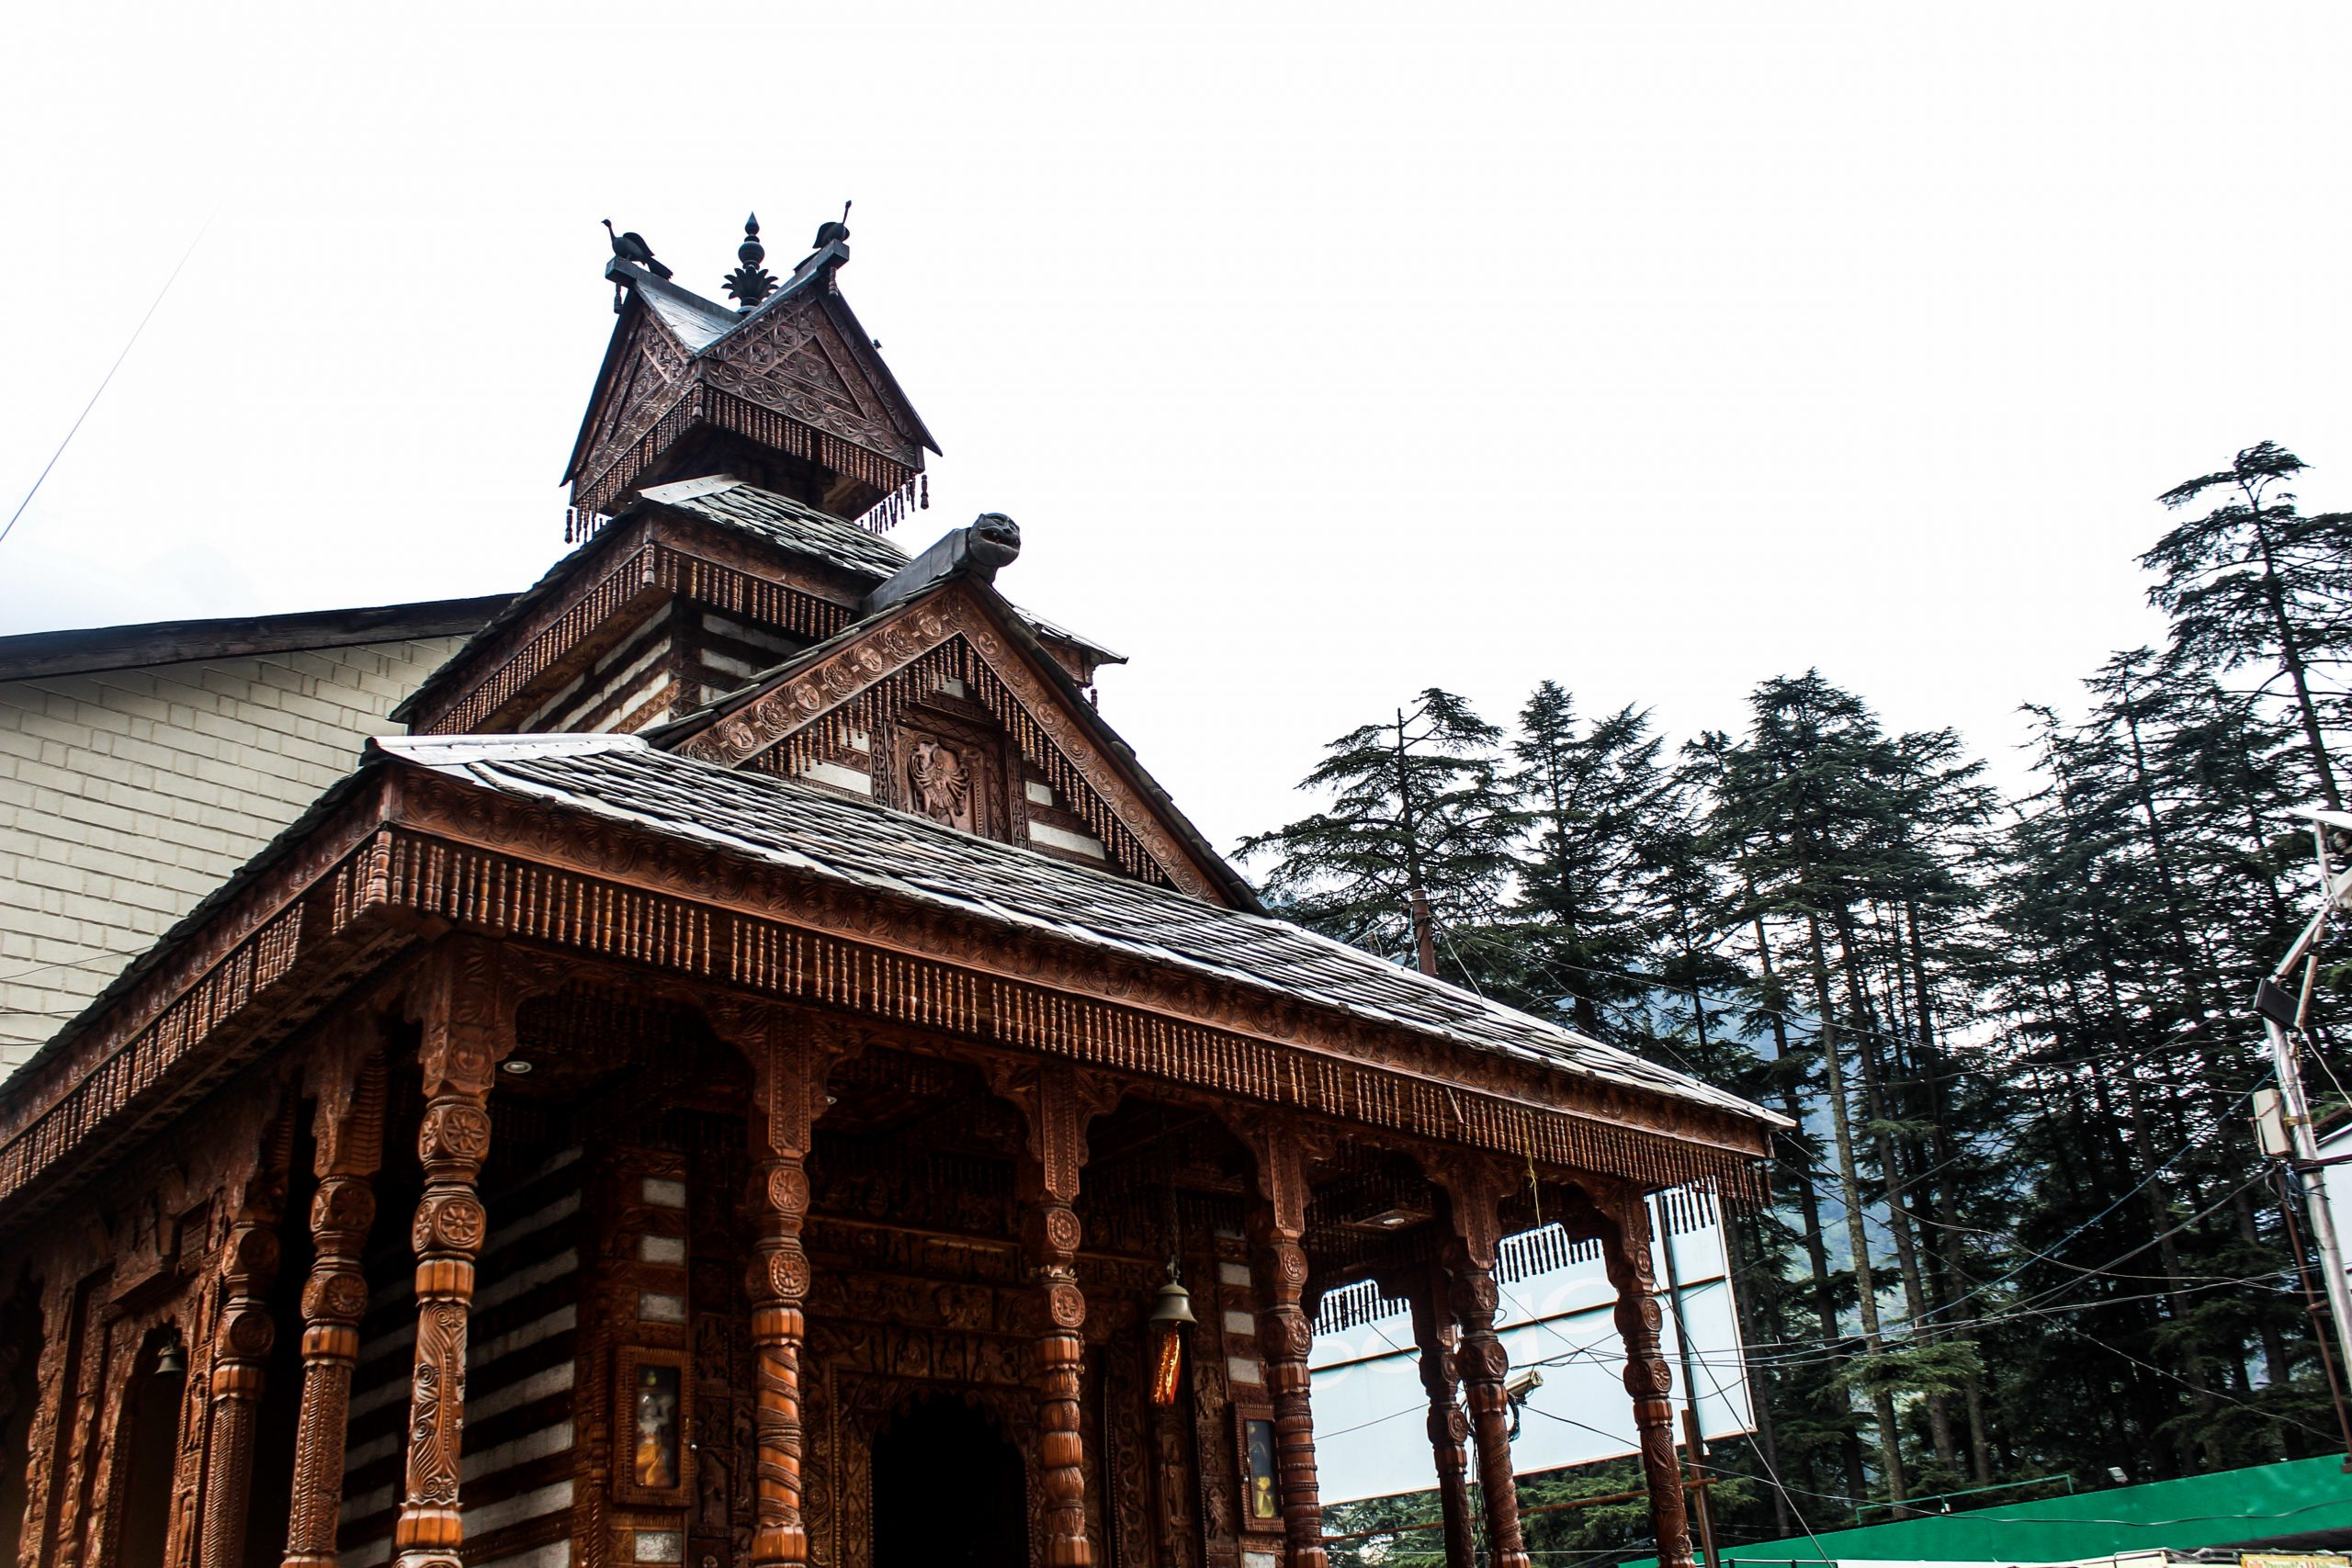 A wooden temple in Manali